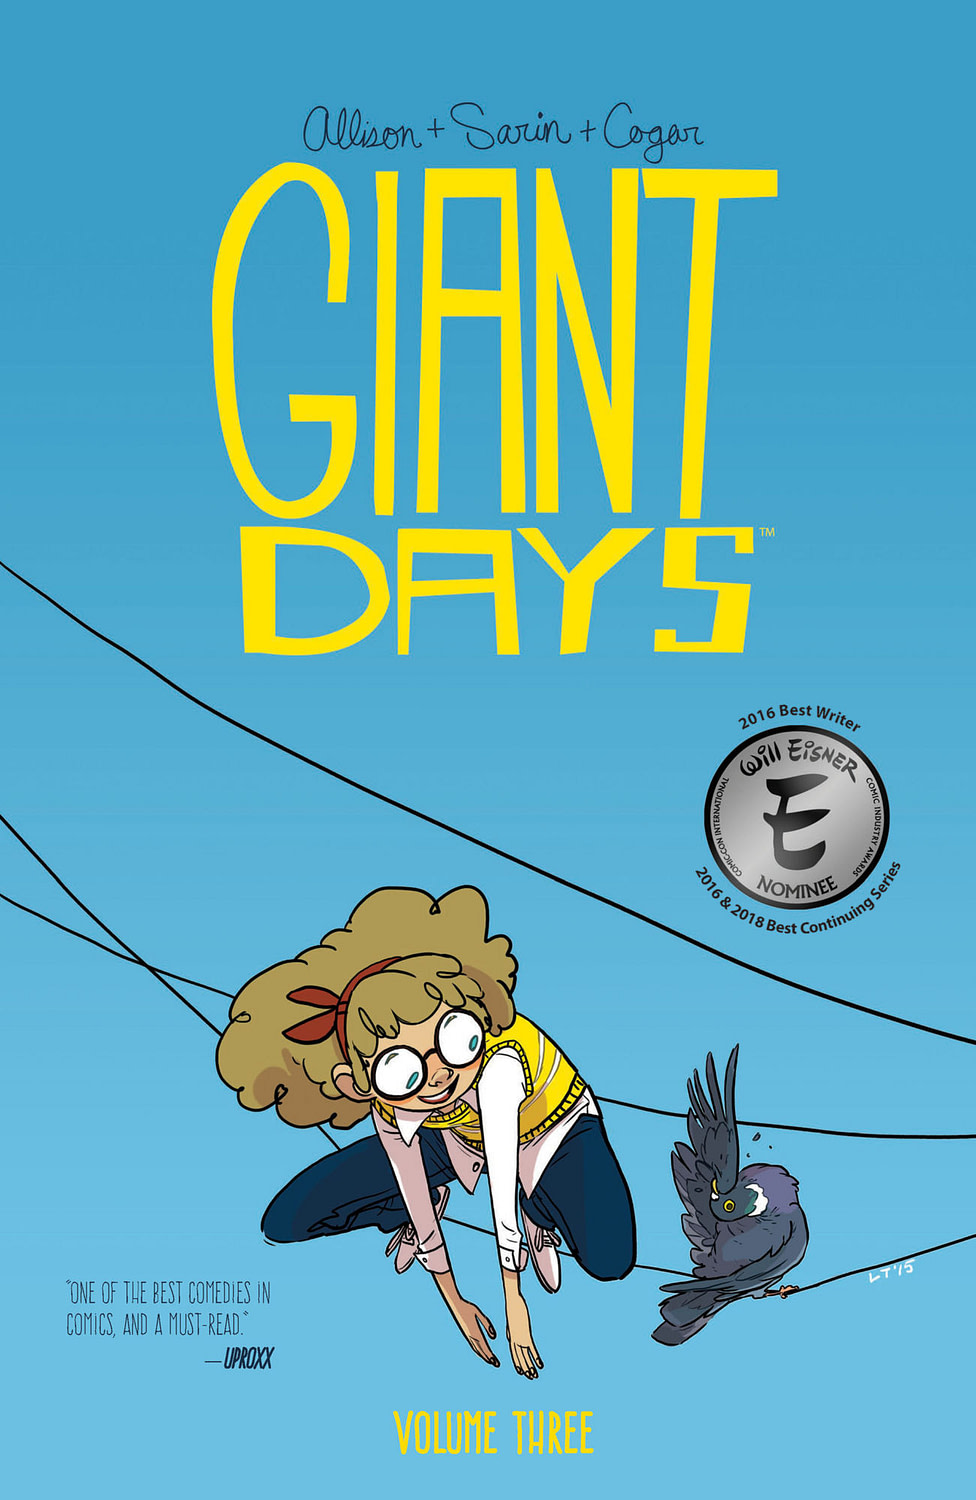 BOOM! to Publish 3-Volume The Quotable Giant Days in July